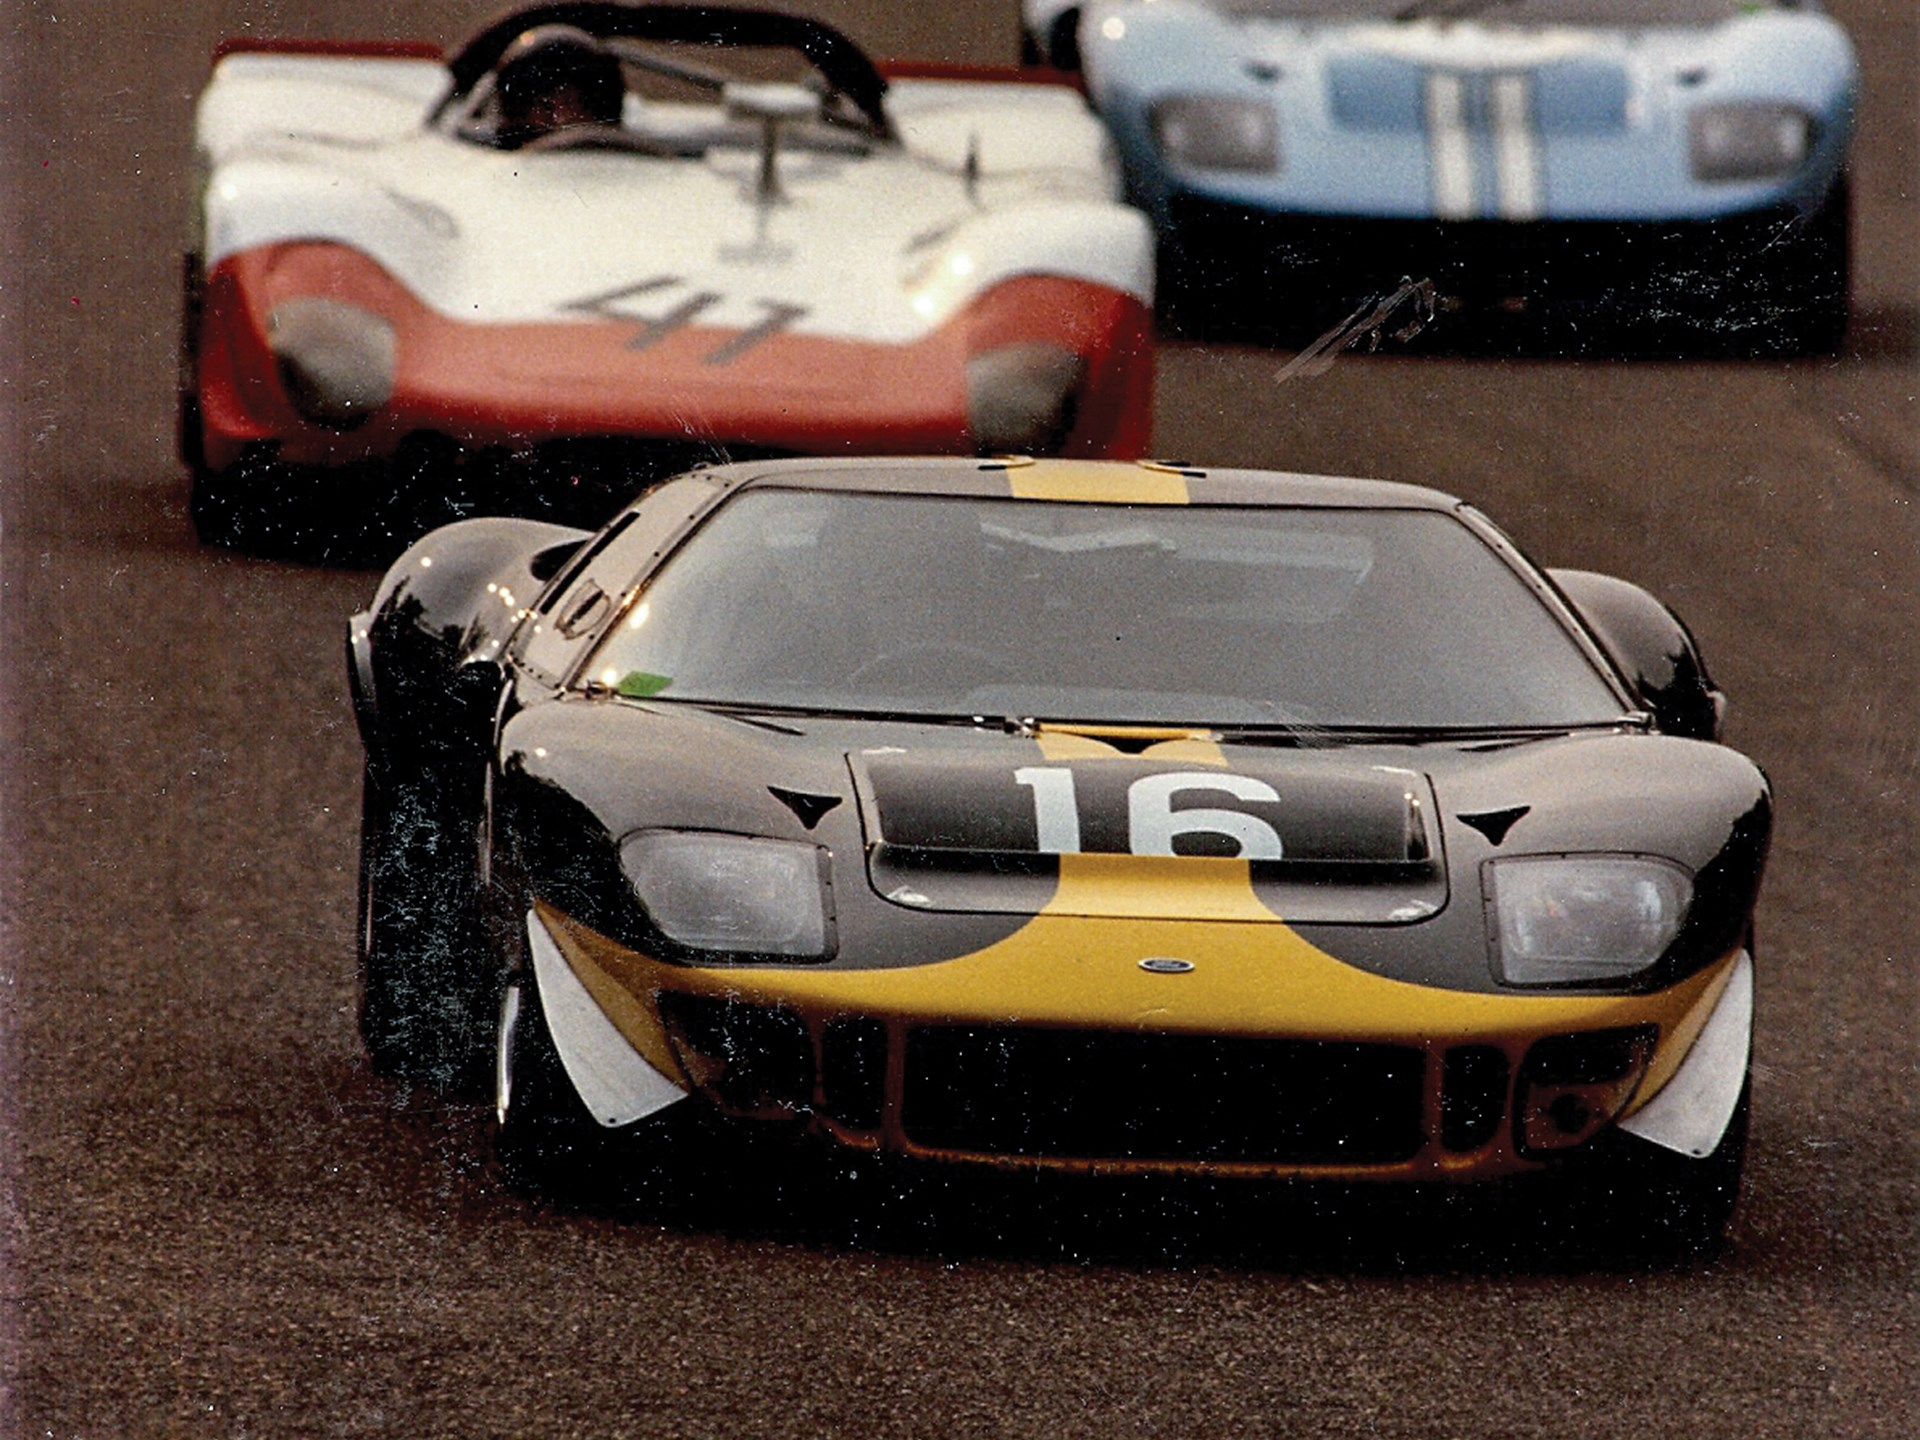 GT40 P/1061 as seen competing during its historic racing career with Bib Stillwell.